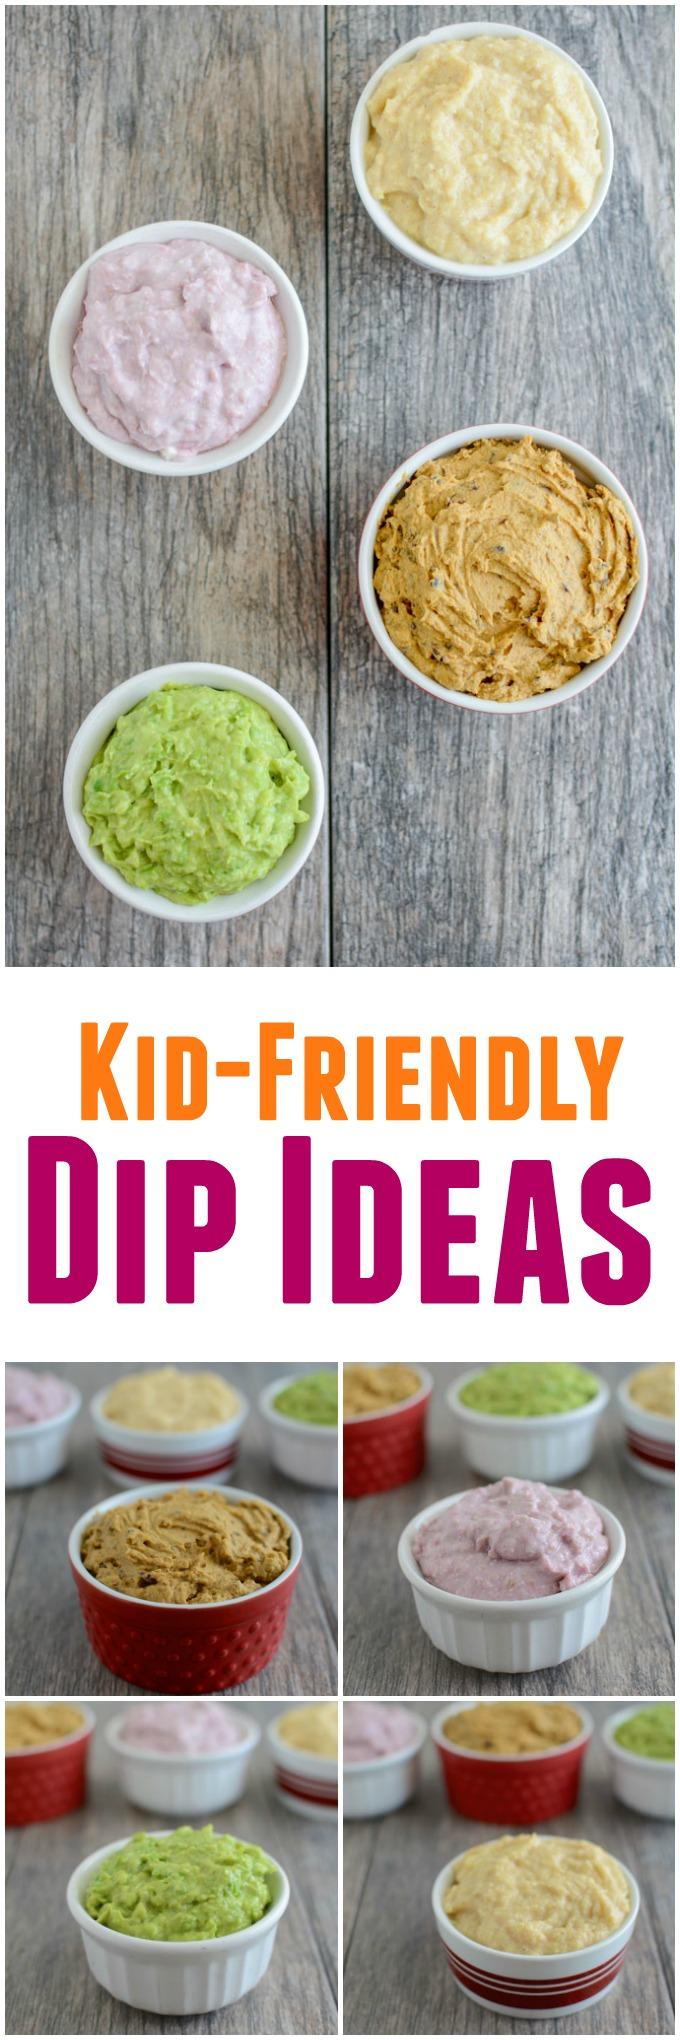 These 4 kid-friendly dips are easy to make and perfect for dipping everything from meat to vegetables at dinner or even eating with a spoon for a healthy snack!